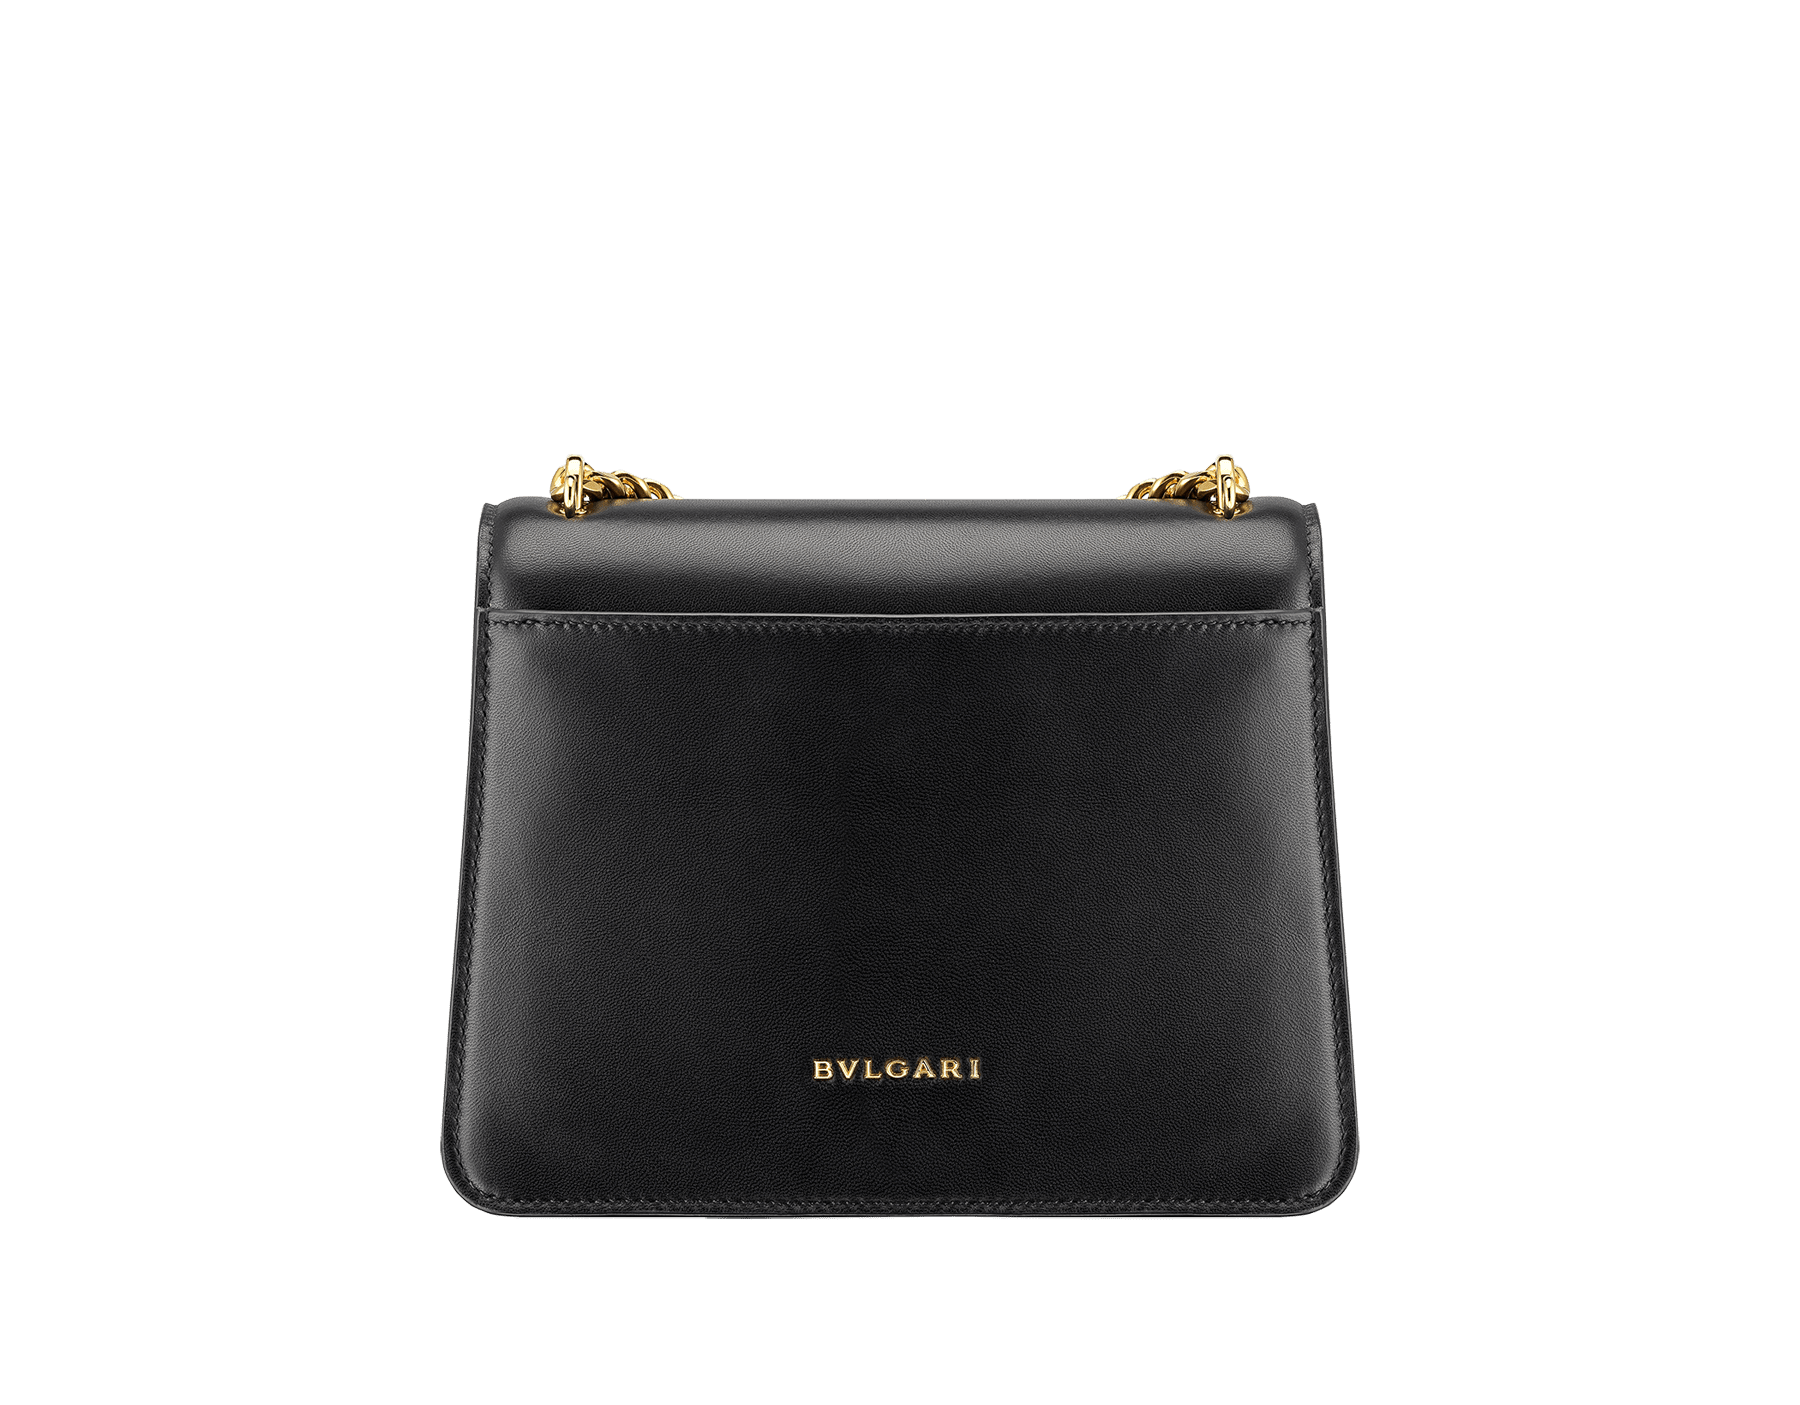 """""""Serpenti Forever"""" small maxi chain crossbody bag in black nappa leather, with black nappa leather inner lining. New Serpenti head closure in gold-plated brass, finished with small black onyx scales in the middle, and red enamel eyes. 291050 image 4"""